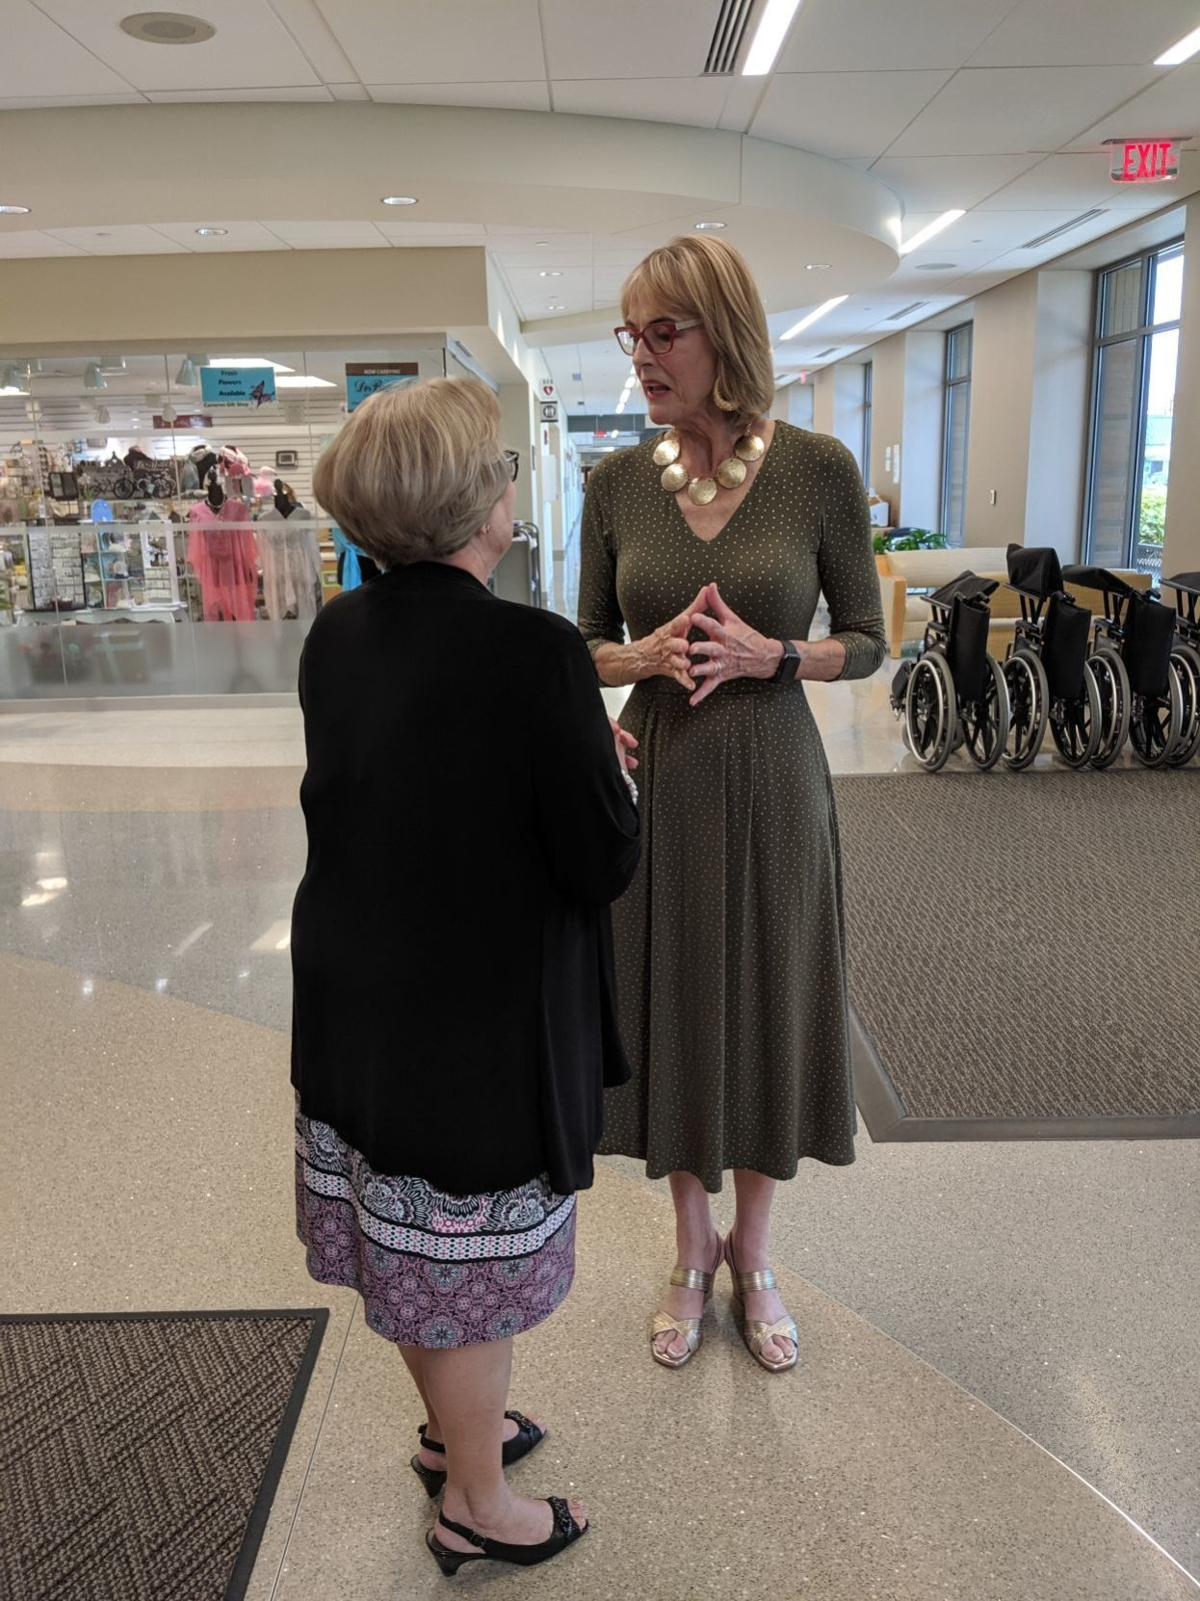 Cameron Transitional Care partners with Mayo Clinic